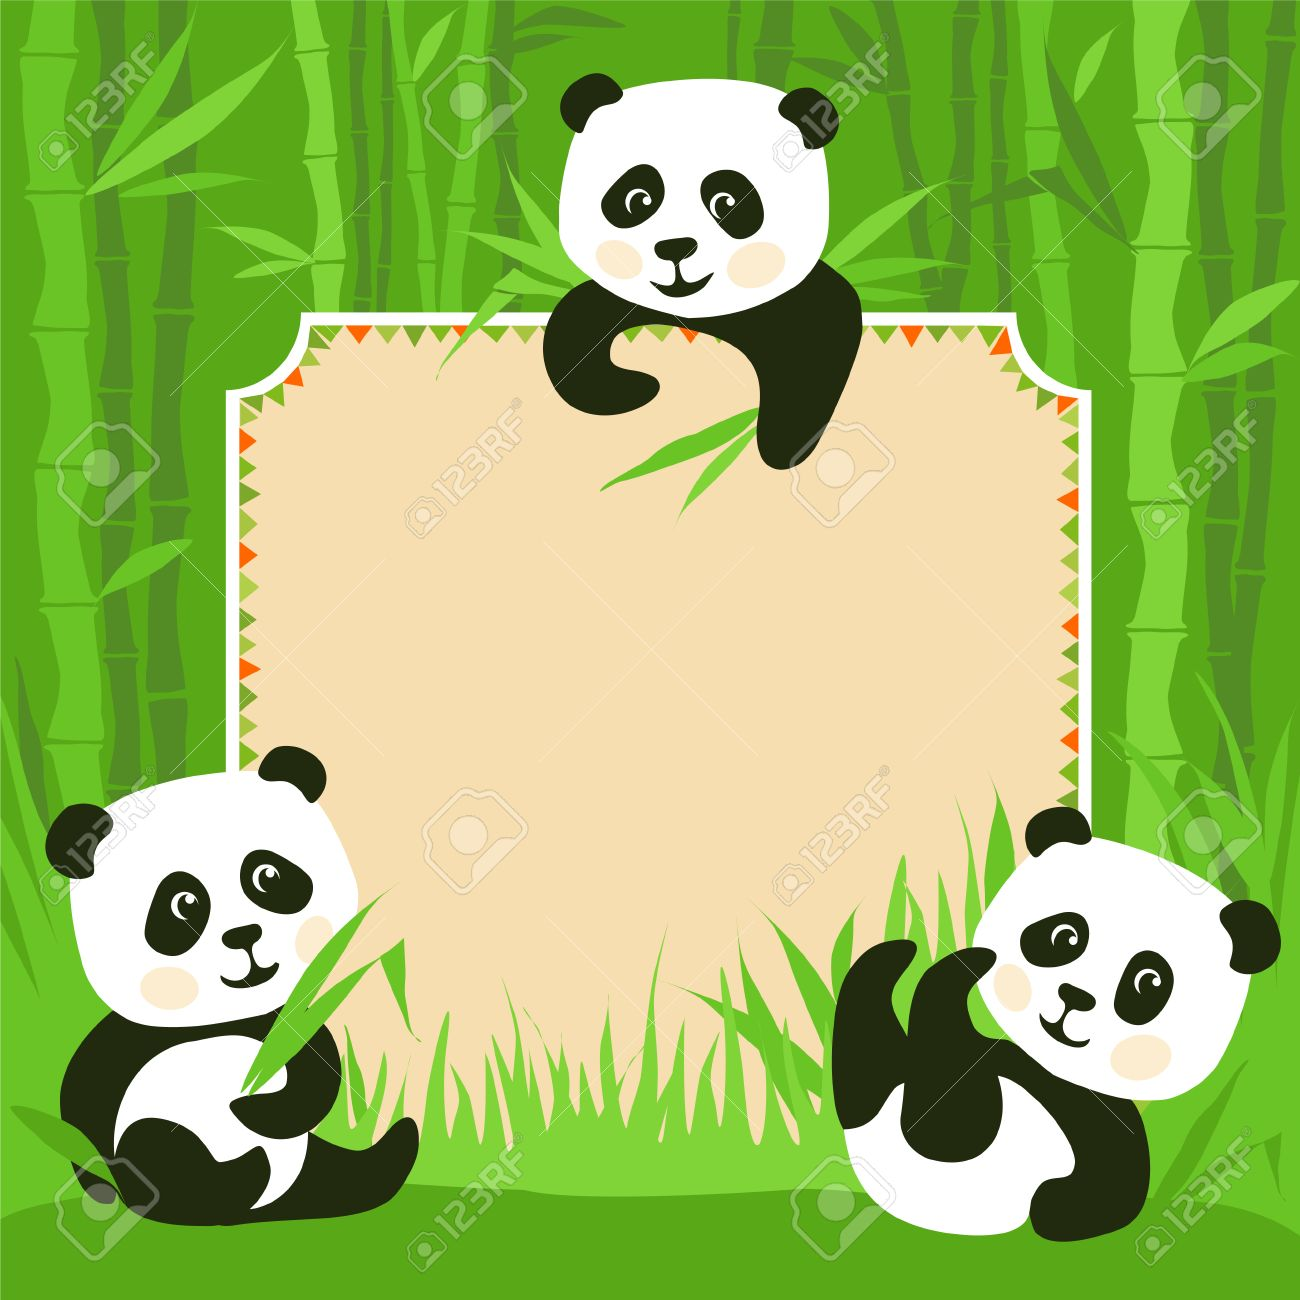 Cartoon Frame - Bamboo & Three Little Pandas Illustration Royalty ...